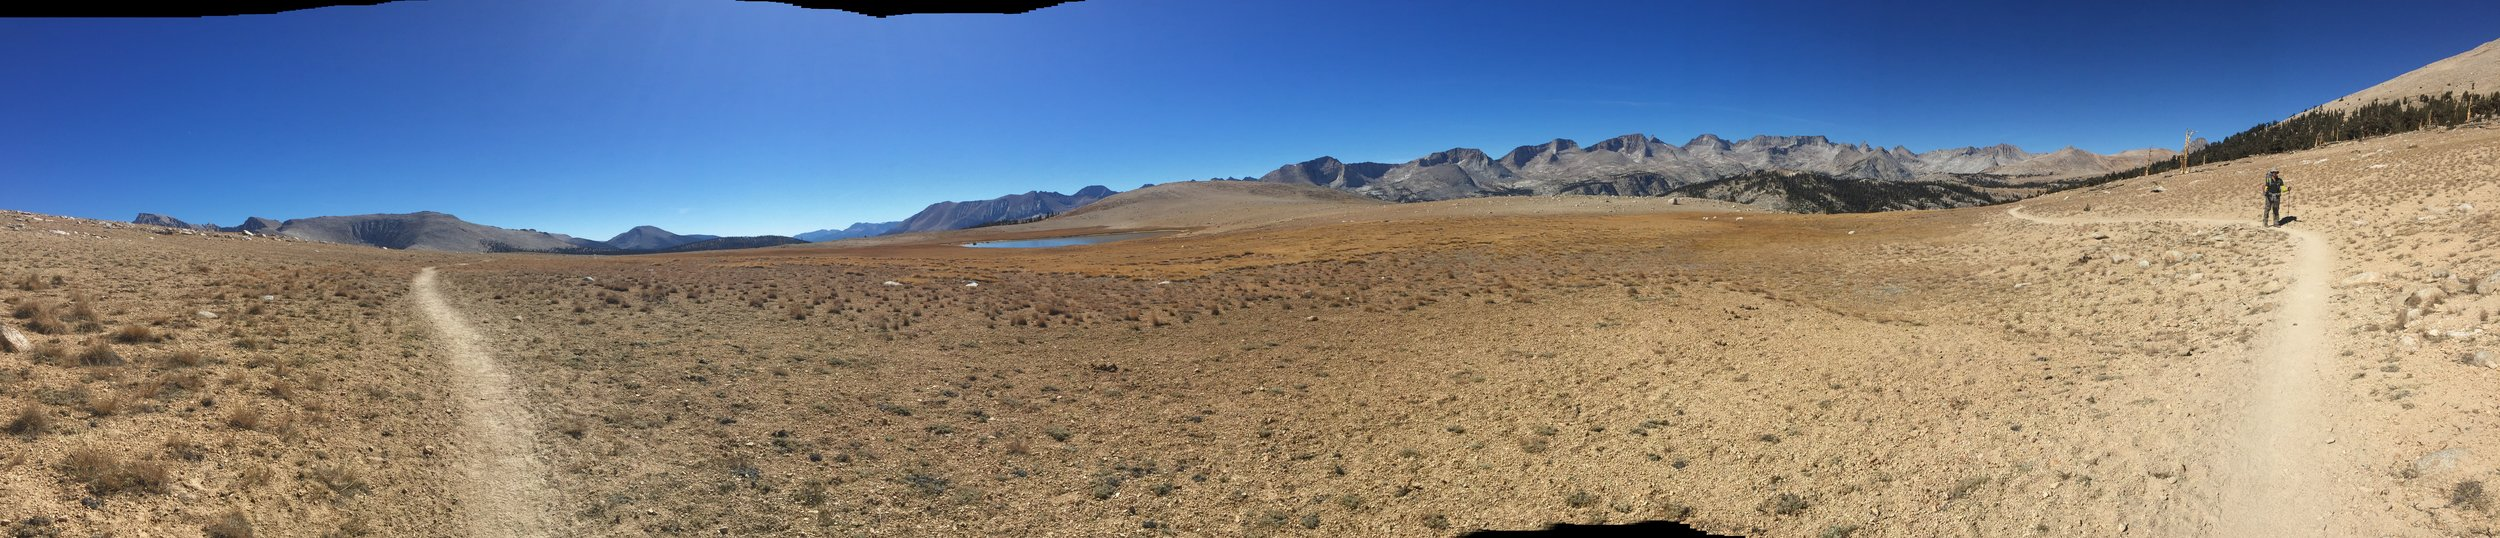 Bighorn Plateau with the Great Western Divide beyond